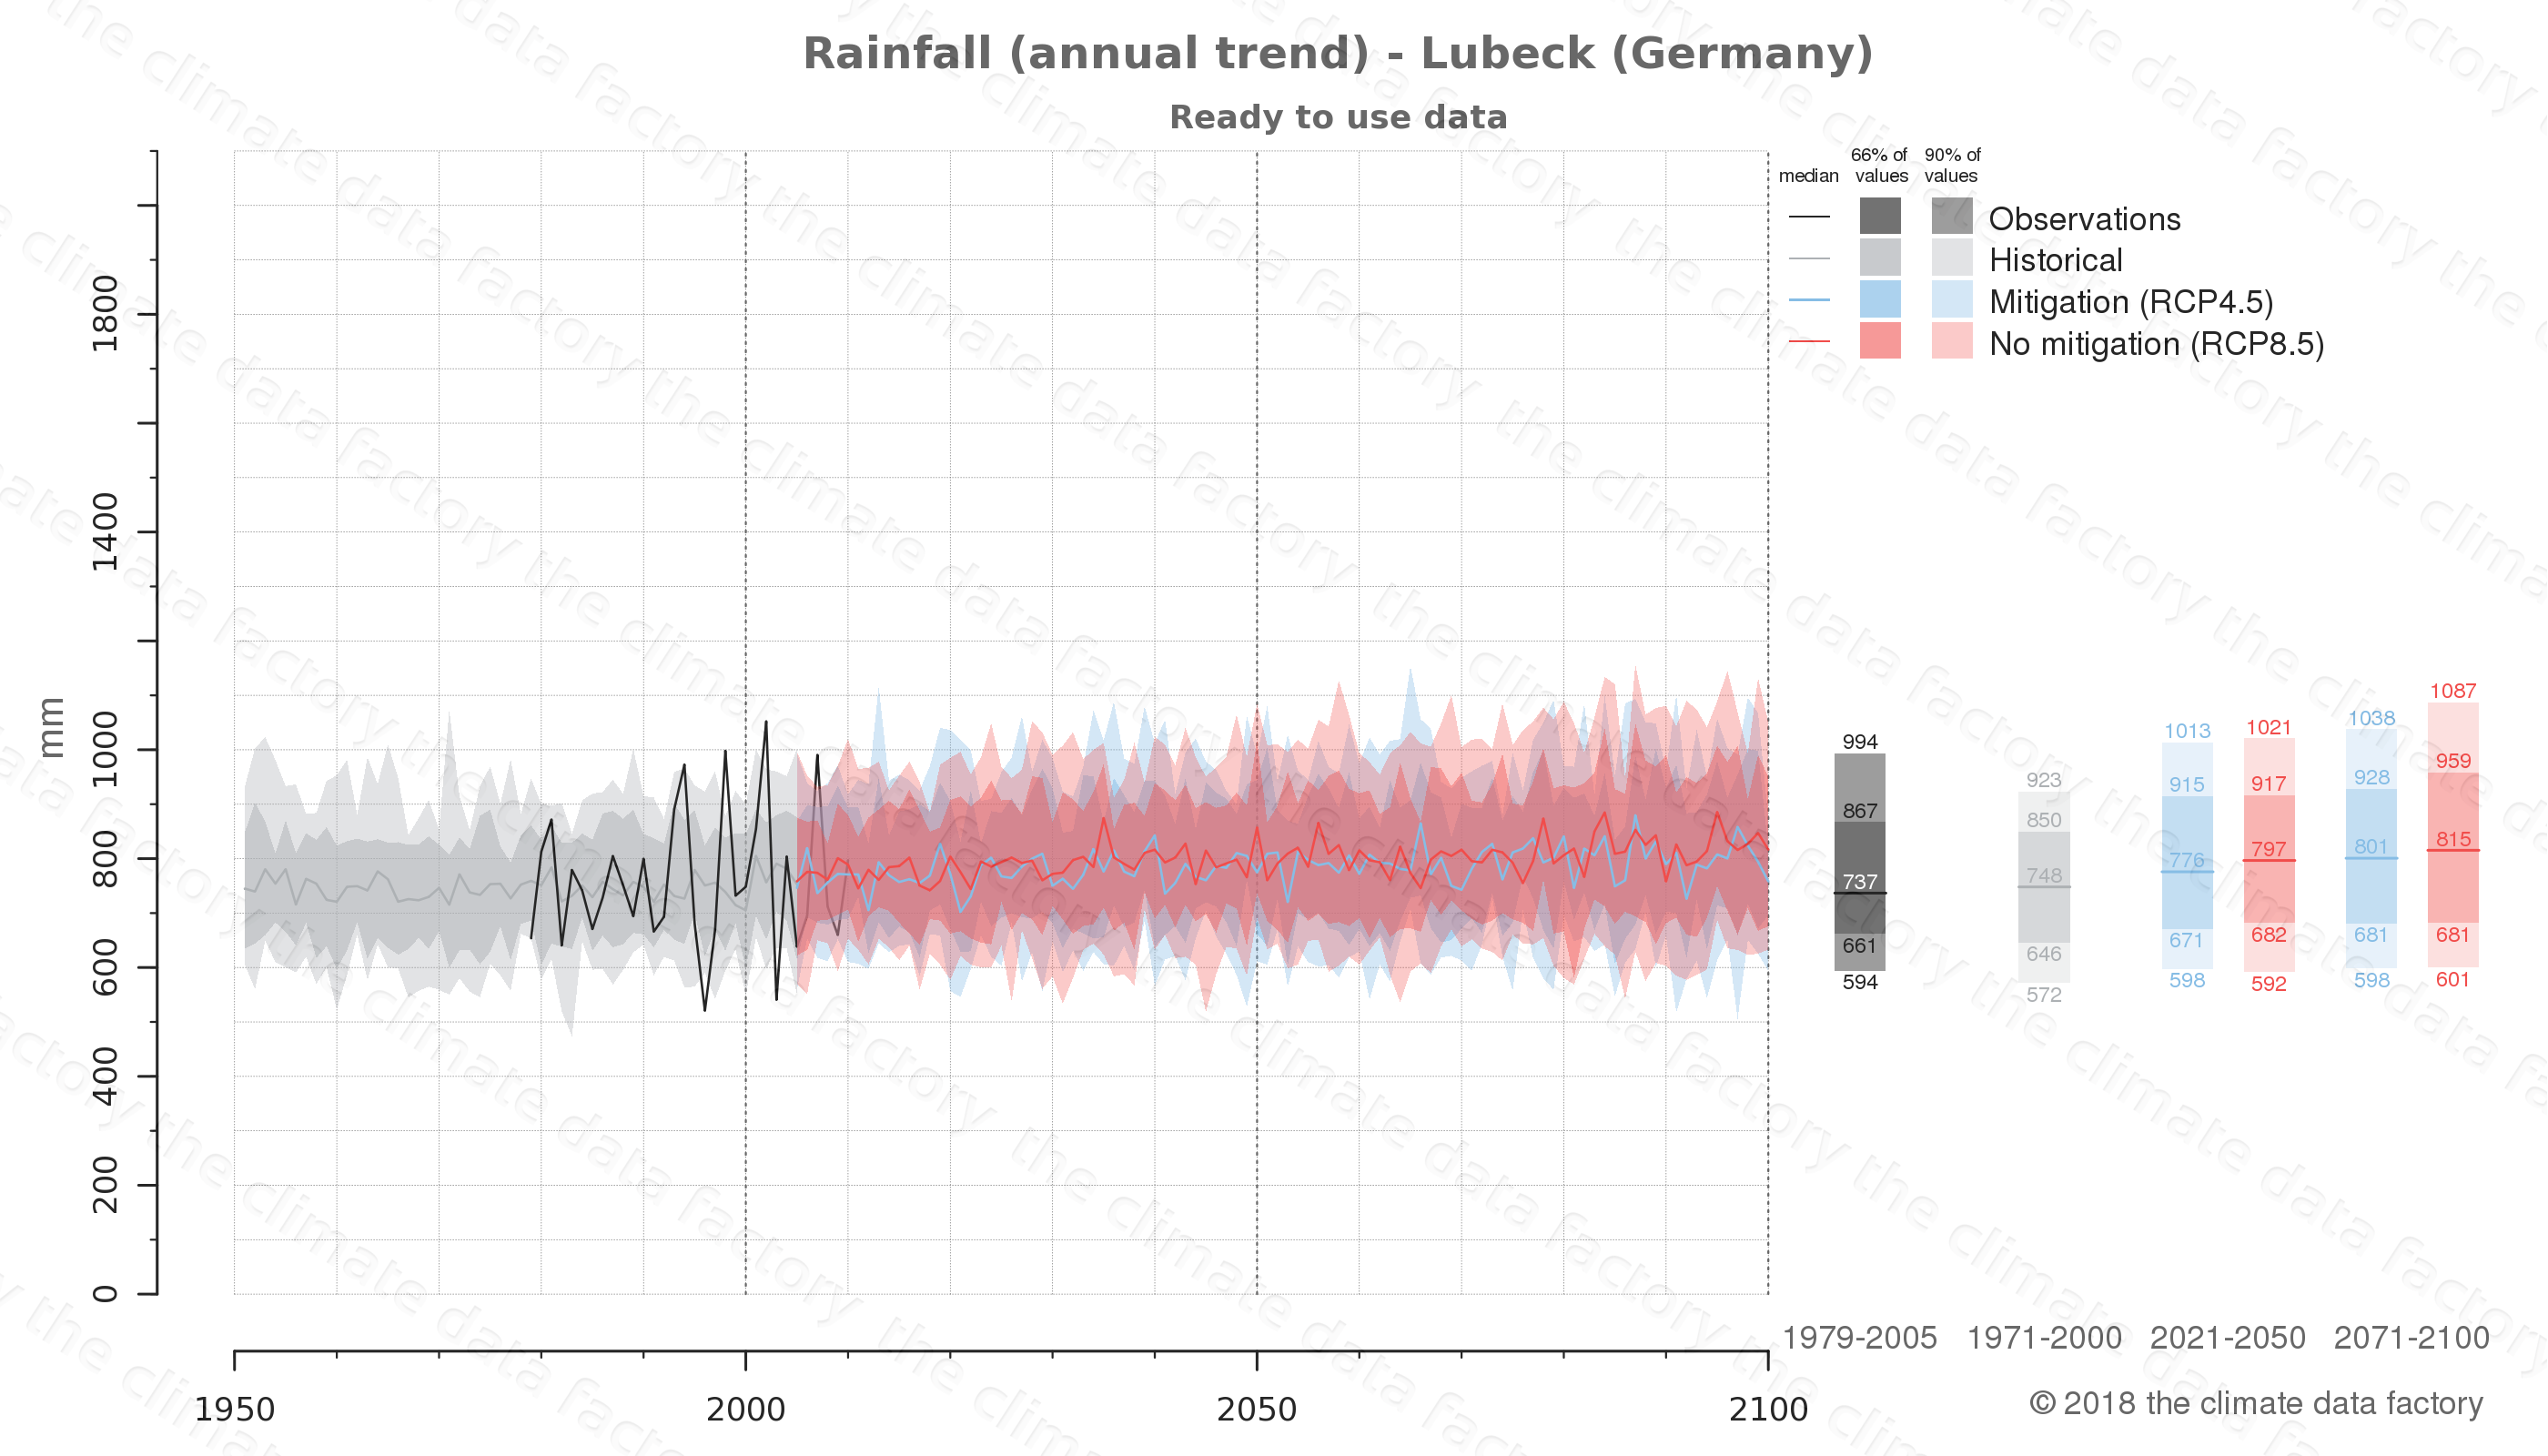 climate change data policy adaptation climate graph city data rainfall lubeck germany